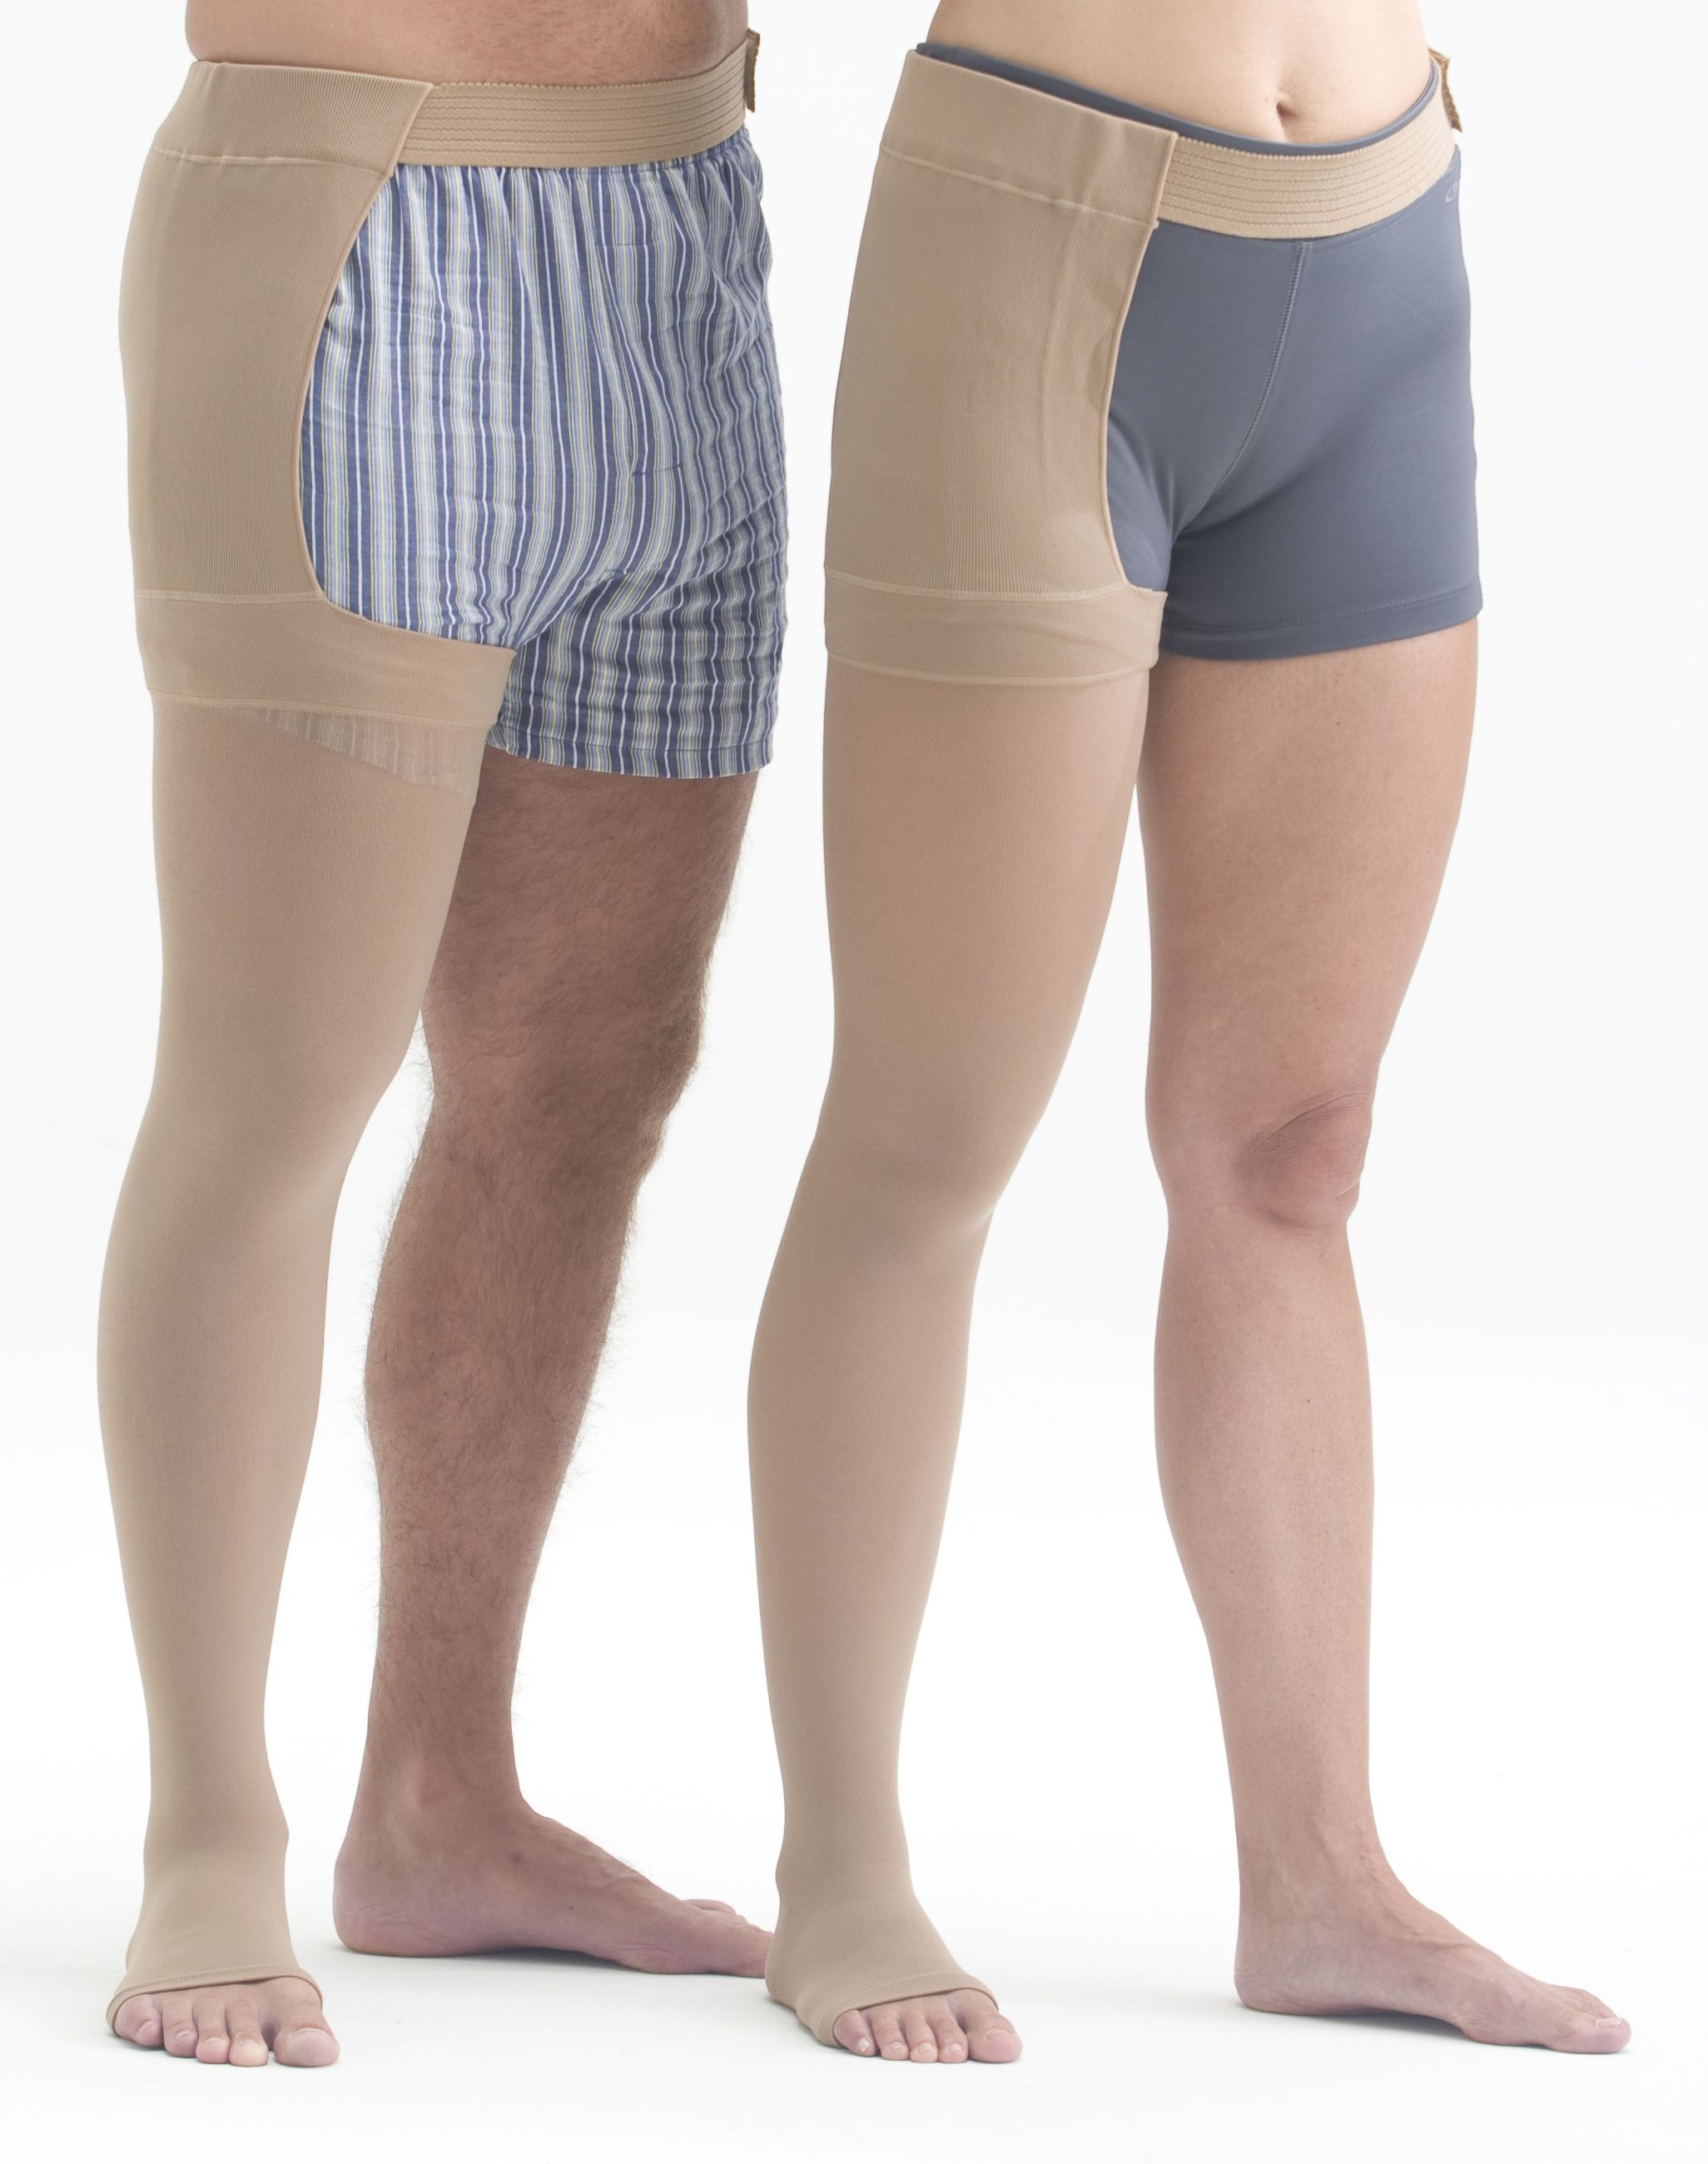 5a560a66a24 Single leg compression stockings are available for men as well ...